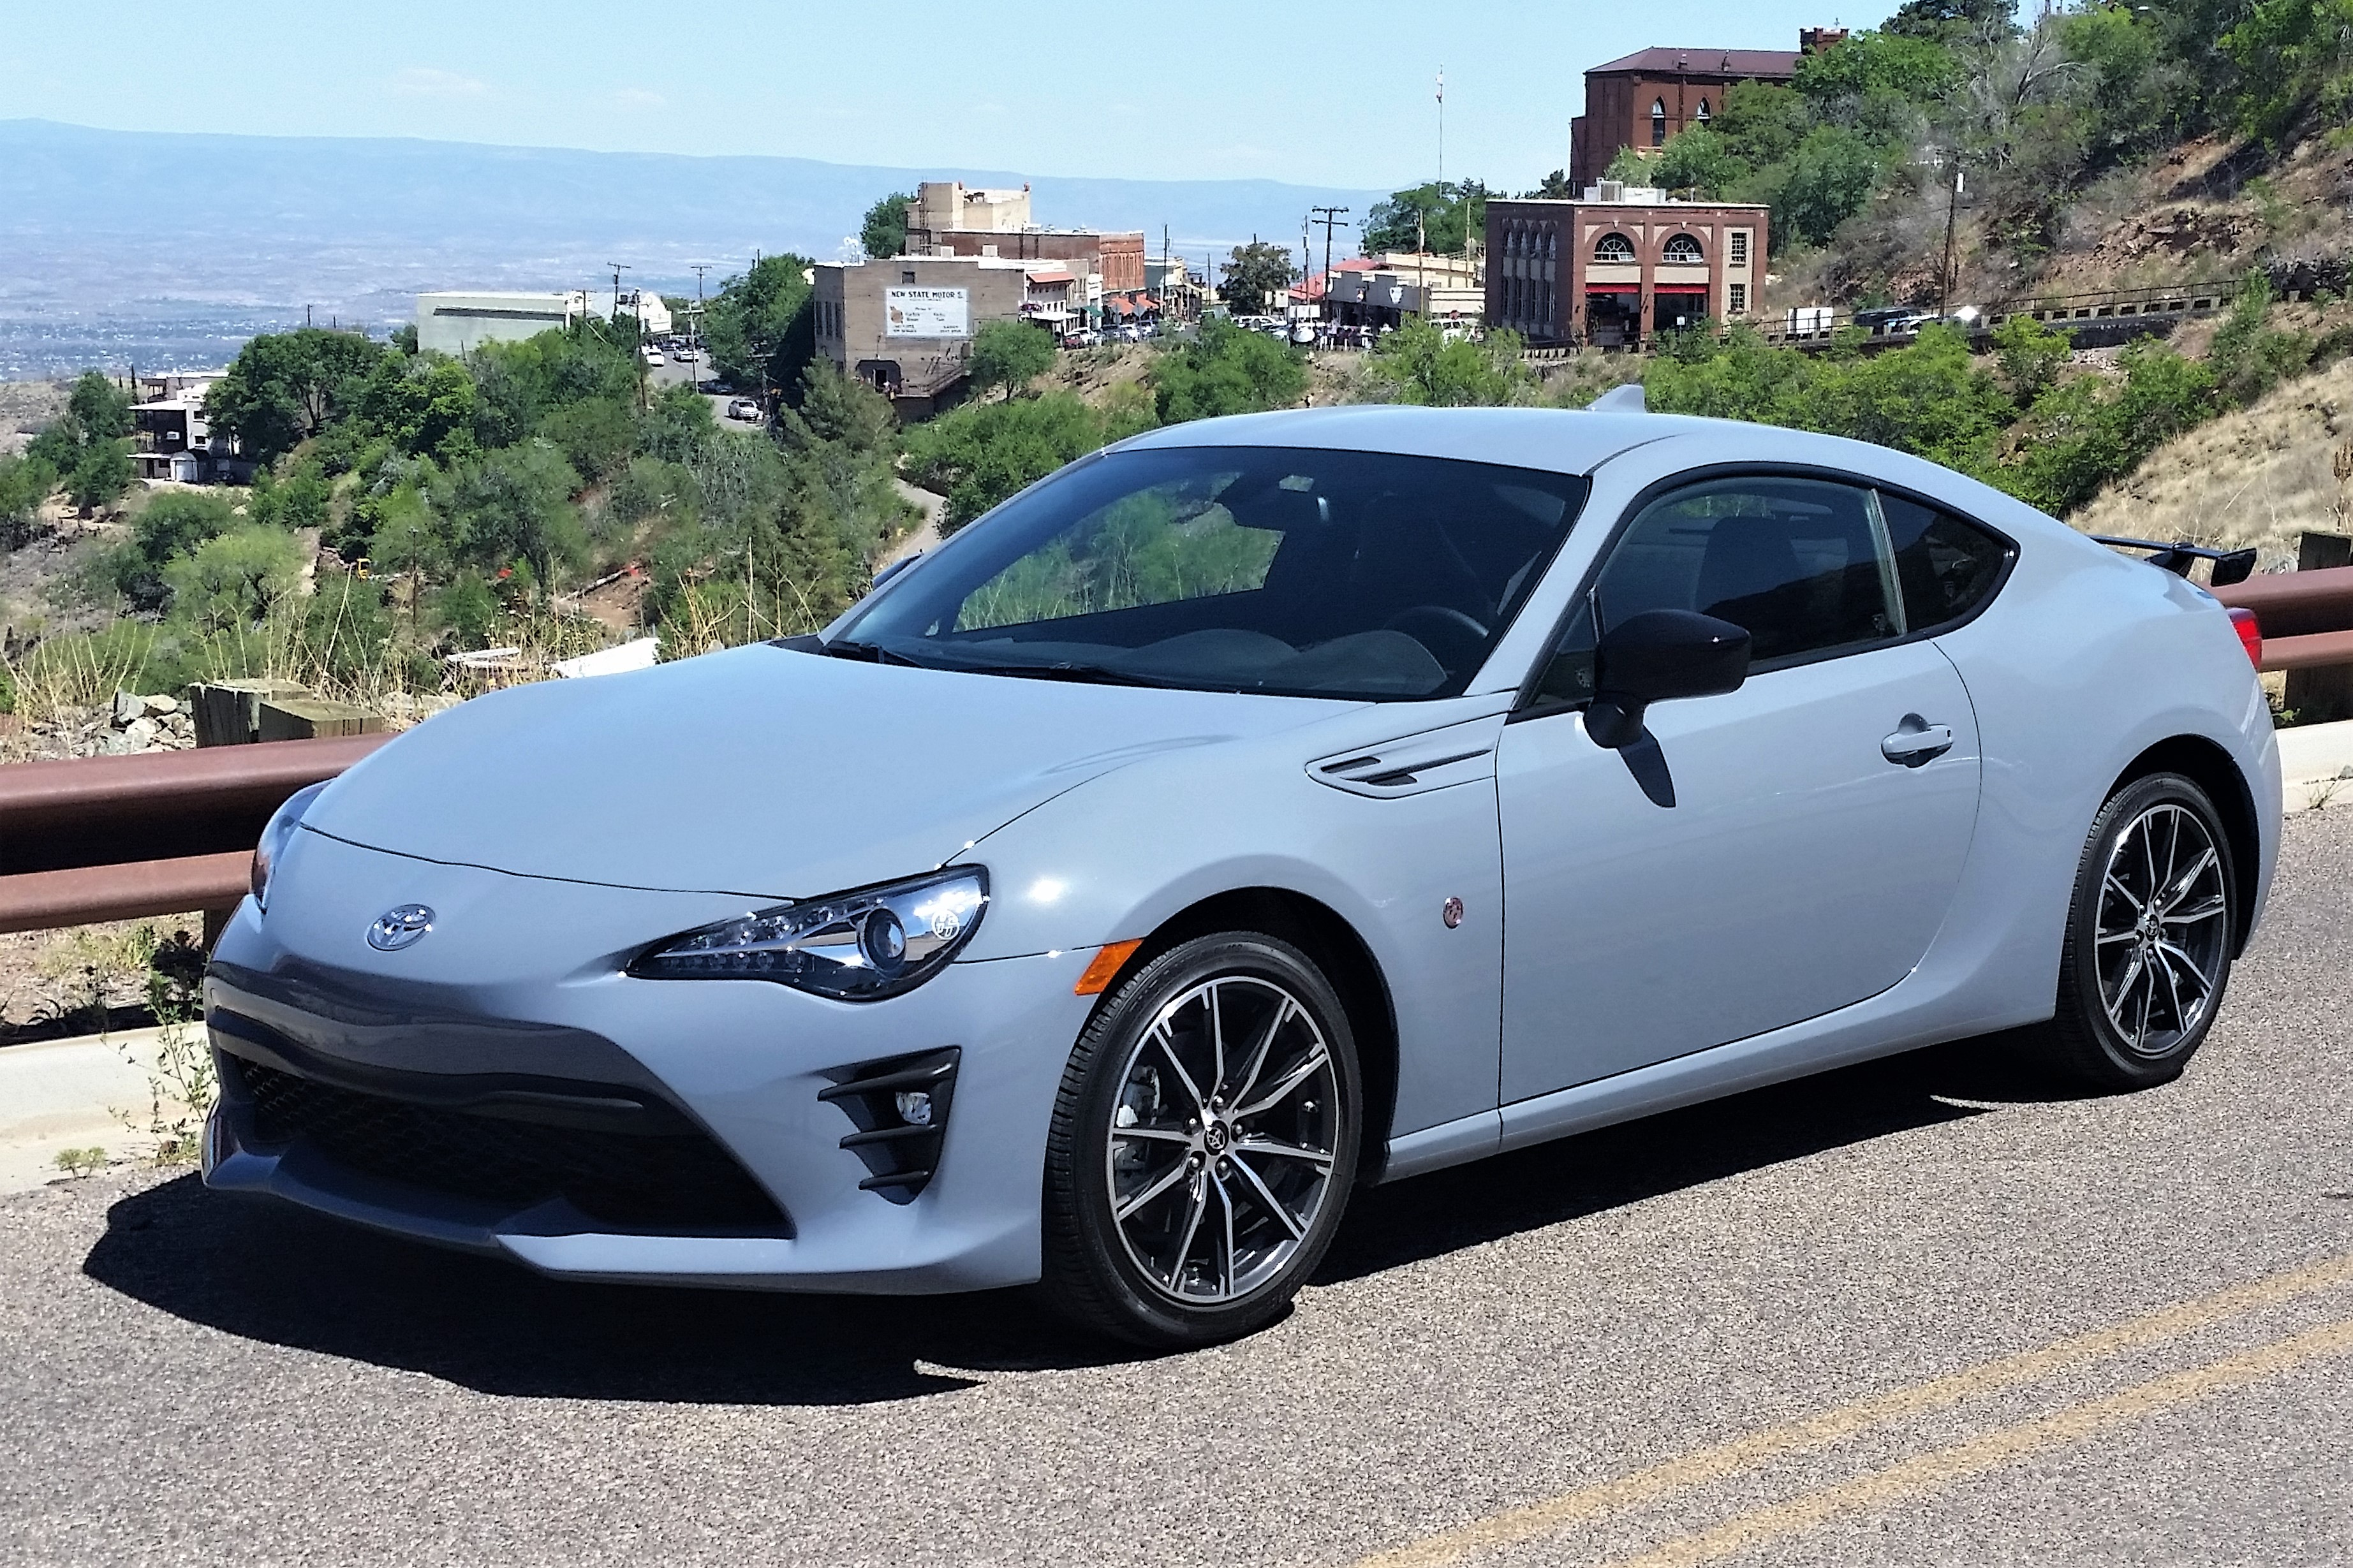 The Toyota 86 just above the quaint old mining town of Jerome, Arizona | Bob Golfen photos